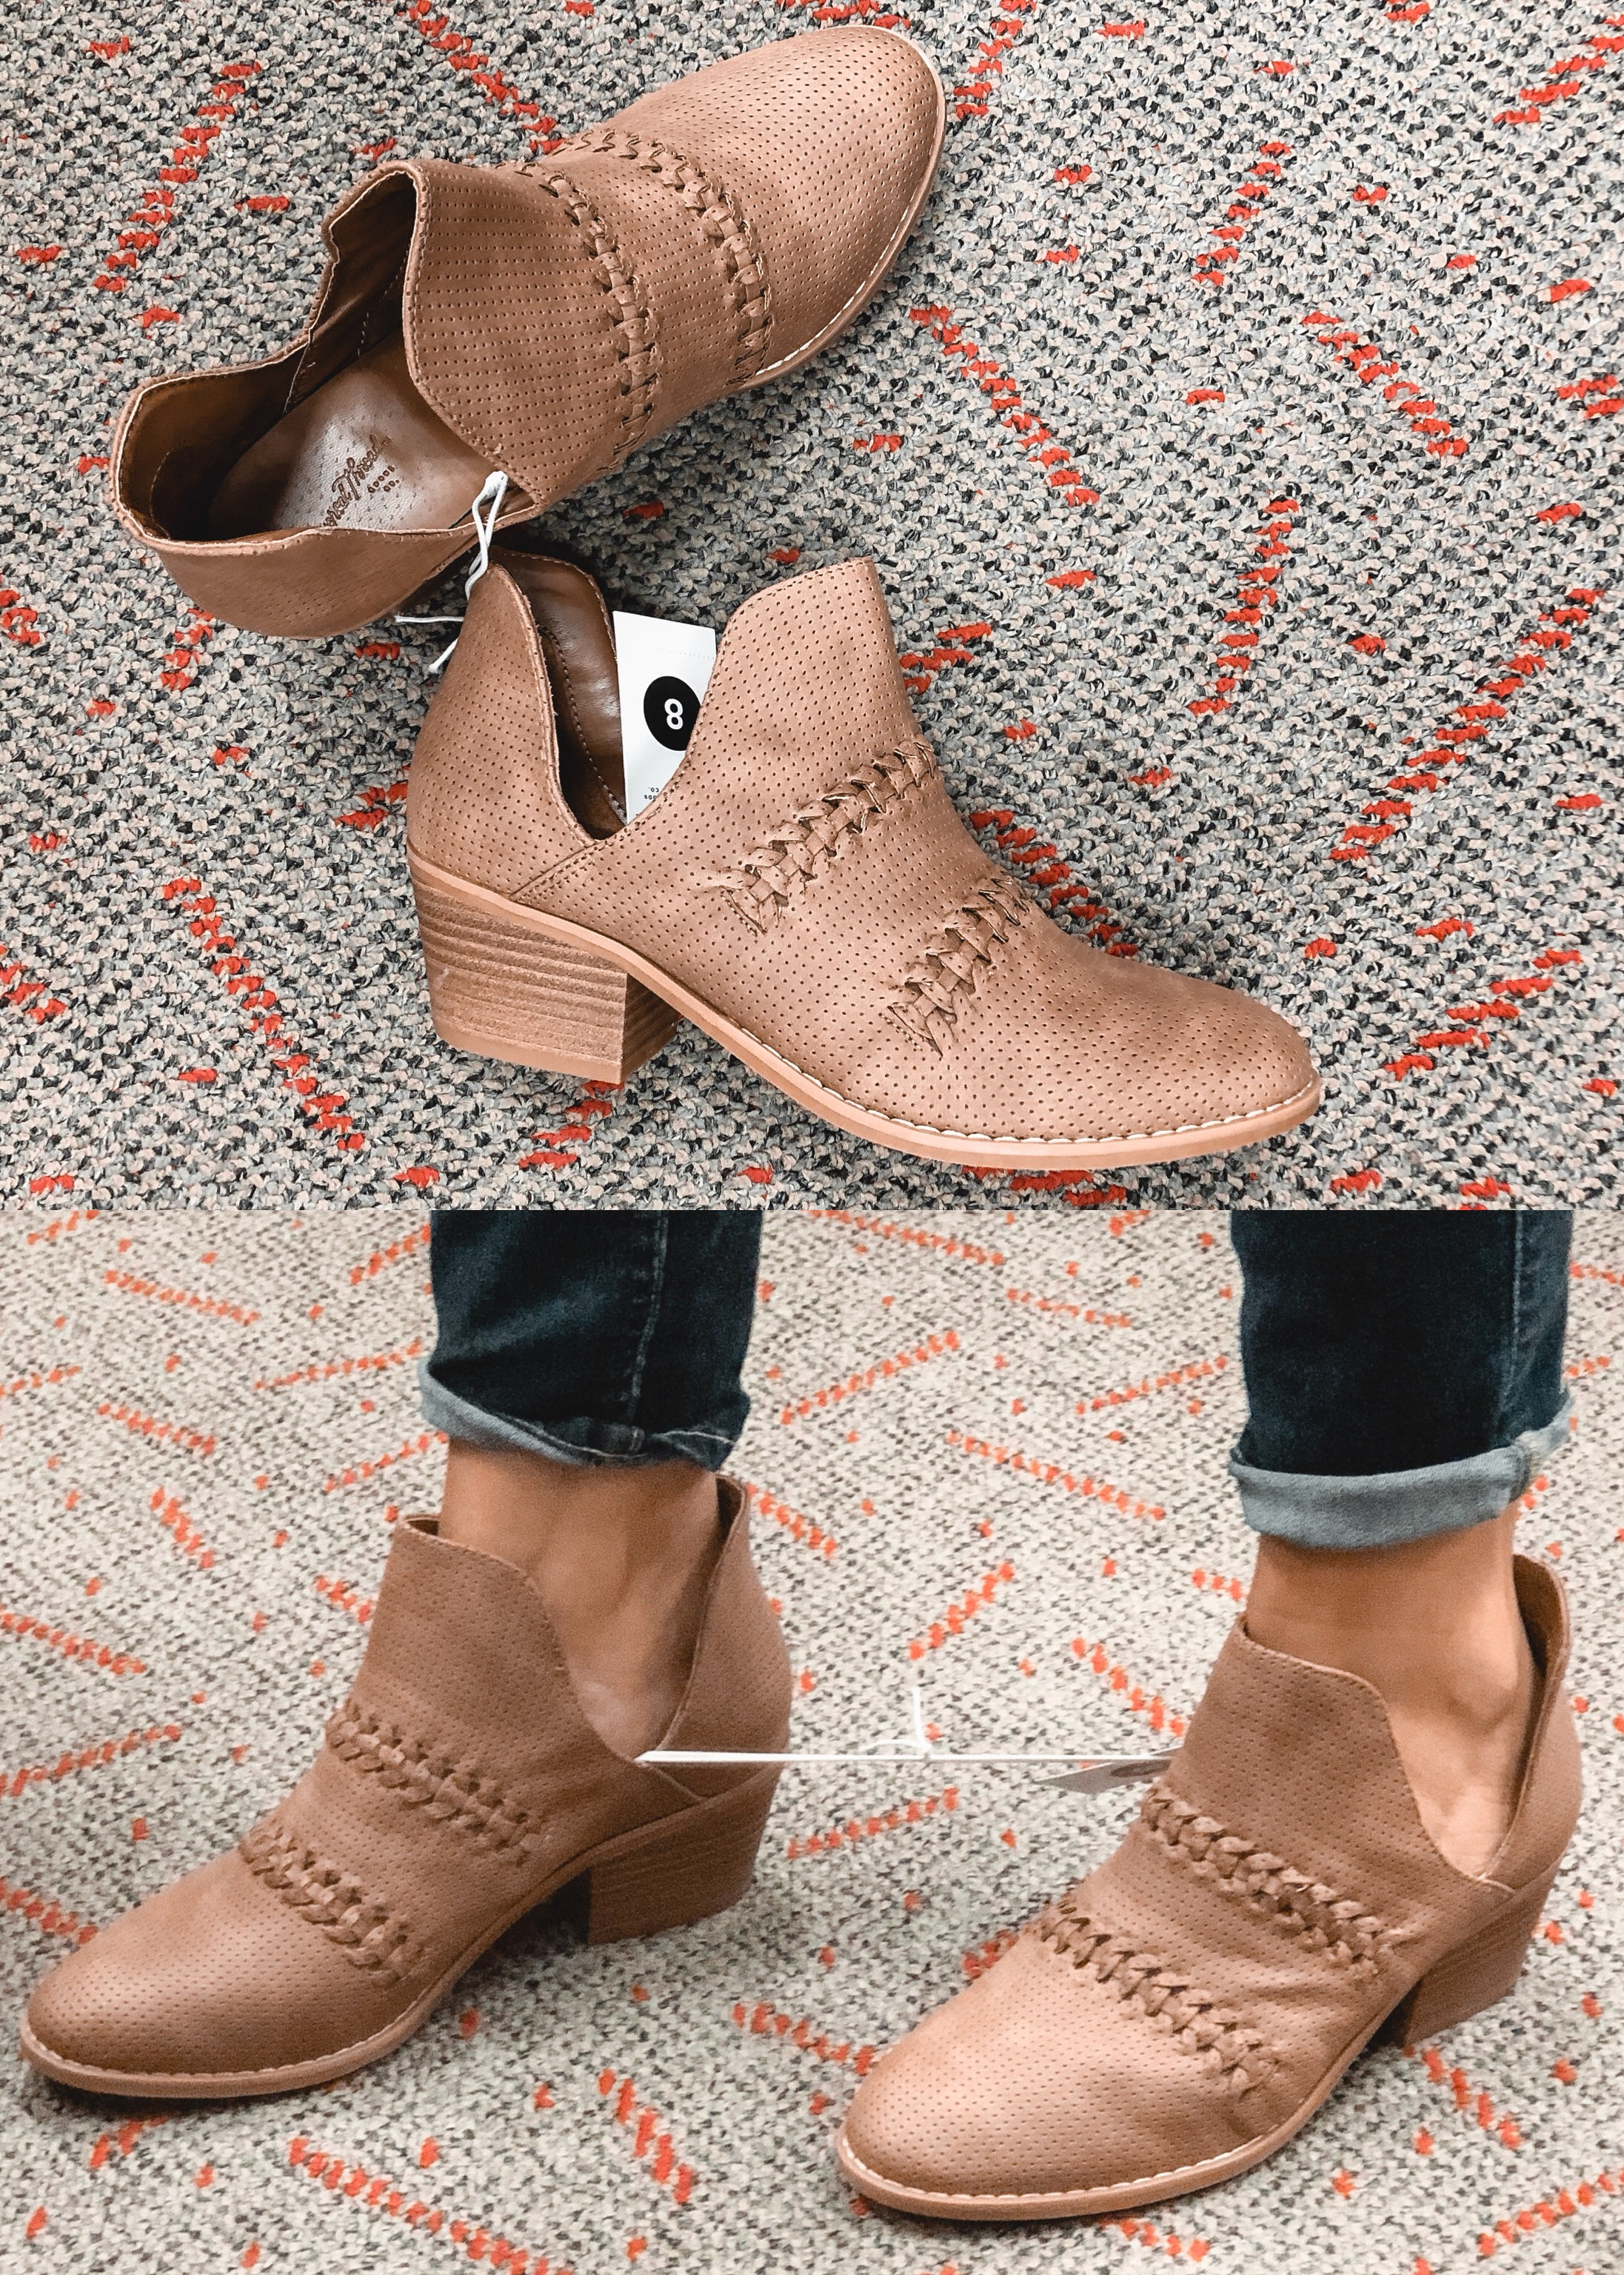 fall target booties review - universal thread autumn braided boot | 9 pairs of target fall shoes reviewed! bylaurenm.com